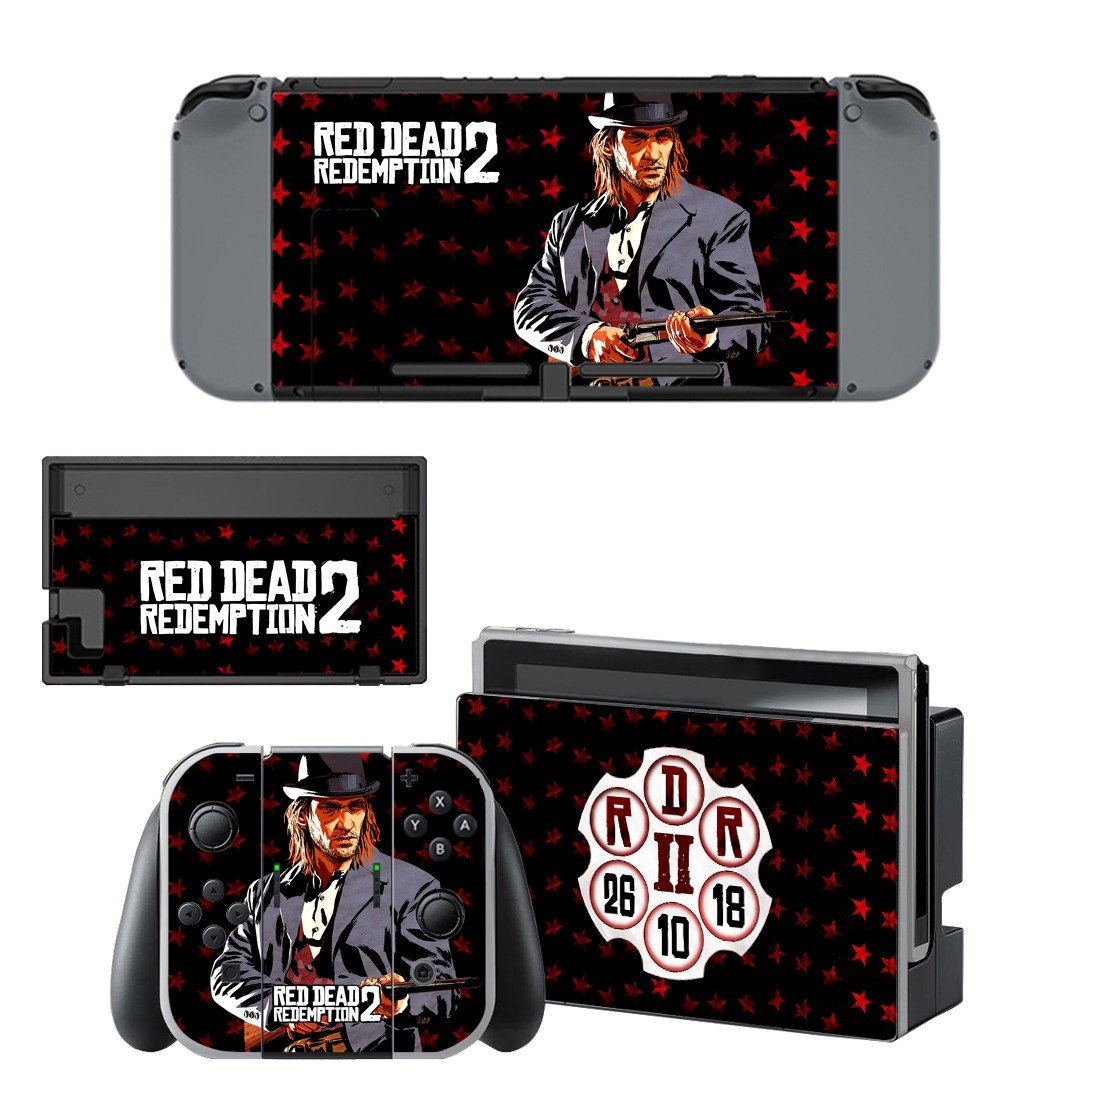 Red Dead Redemption 2 decal skin sticker for Nintendo Switch console and controllers